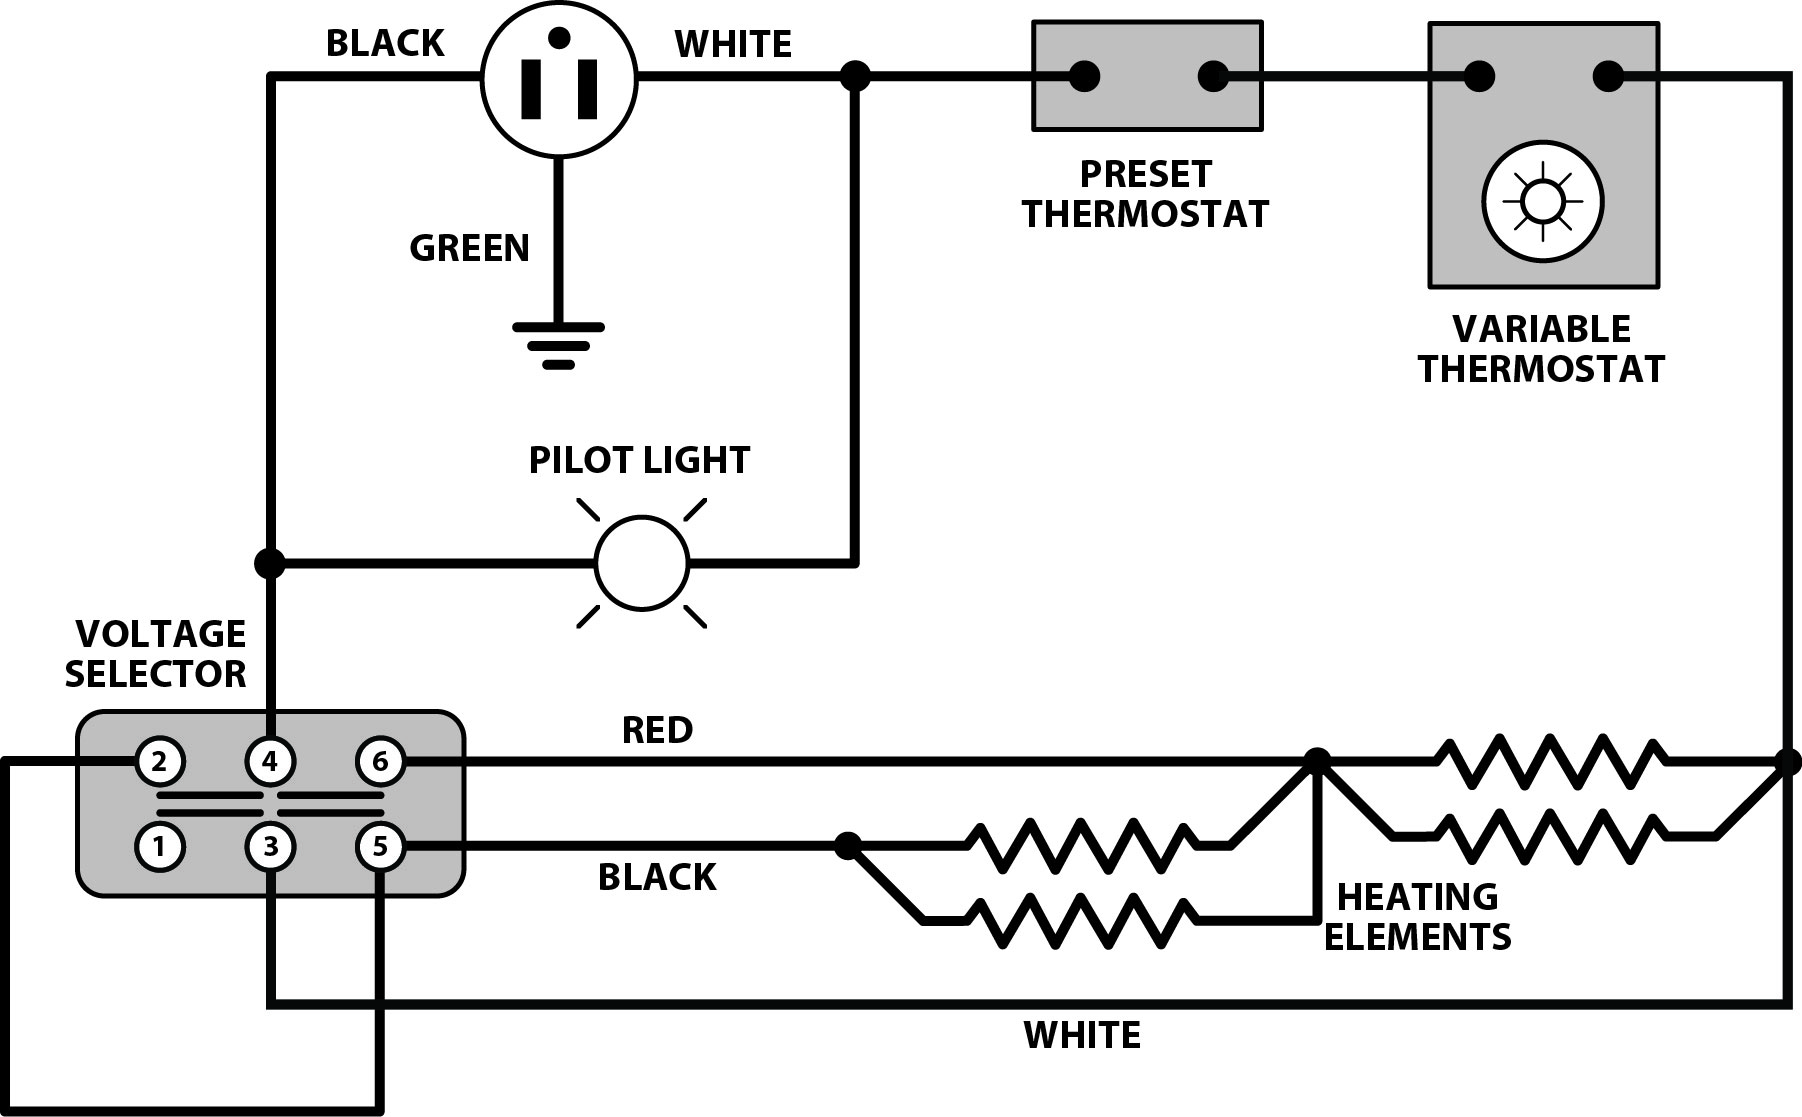 Electric Oven Circuit Diagram - Today Wiring Diagram on electric oven wire harness, electric oven battery, electric oven regulator, ge microwave schematic diagram, electric oven thermostat, electric oven heating element, electric stove schematic, electric convection oven, electric oven plug, electric stove wire, electric pizza oven, electric oven coil, electric range schematics, electric oven parts, ge oven diagram, electric range wiring, electric oven cabinet, electric oven dimensions, electric stove wiring, electric oven exhaust,